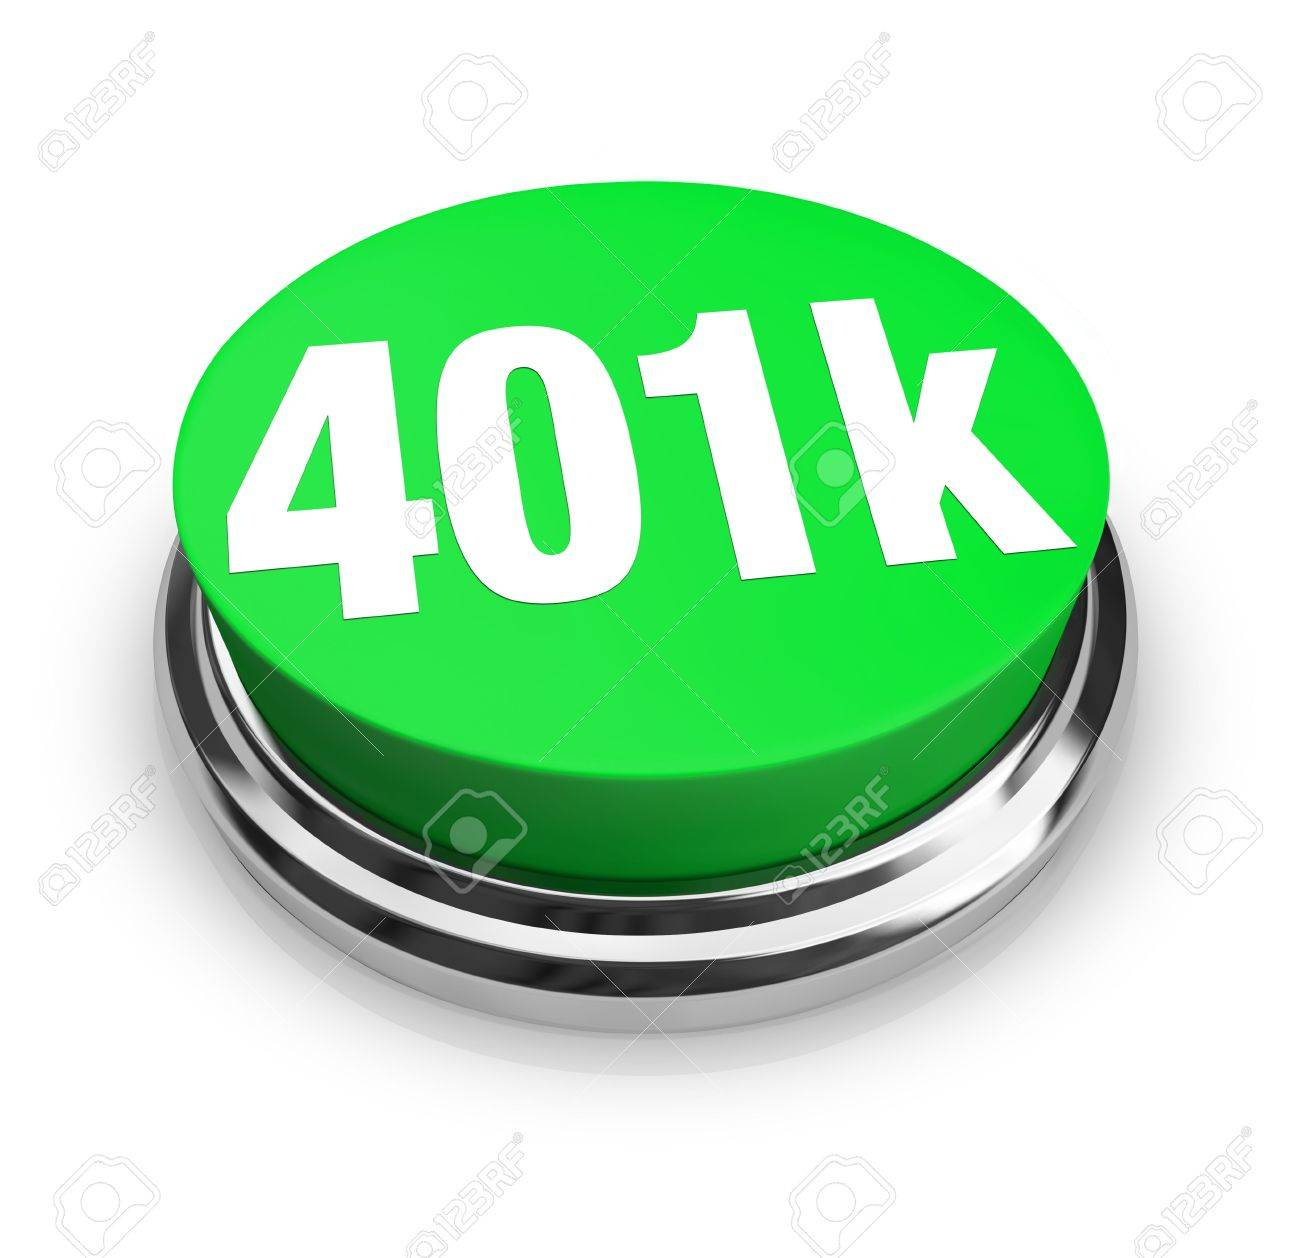 A green button with the word 401k on it Stock Photo - 6696195